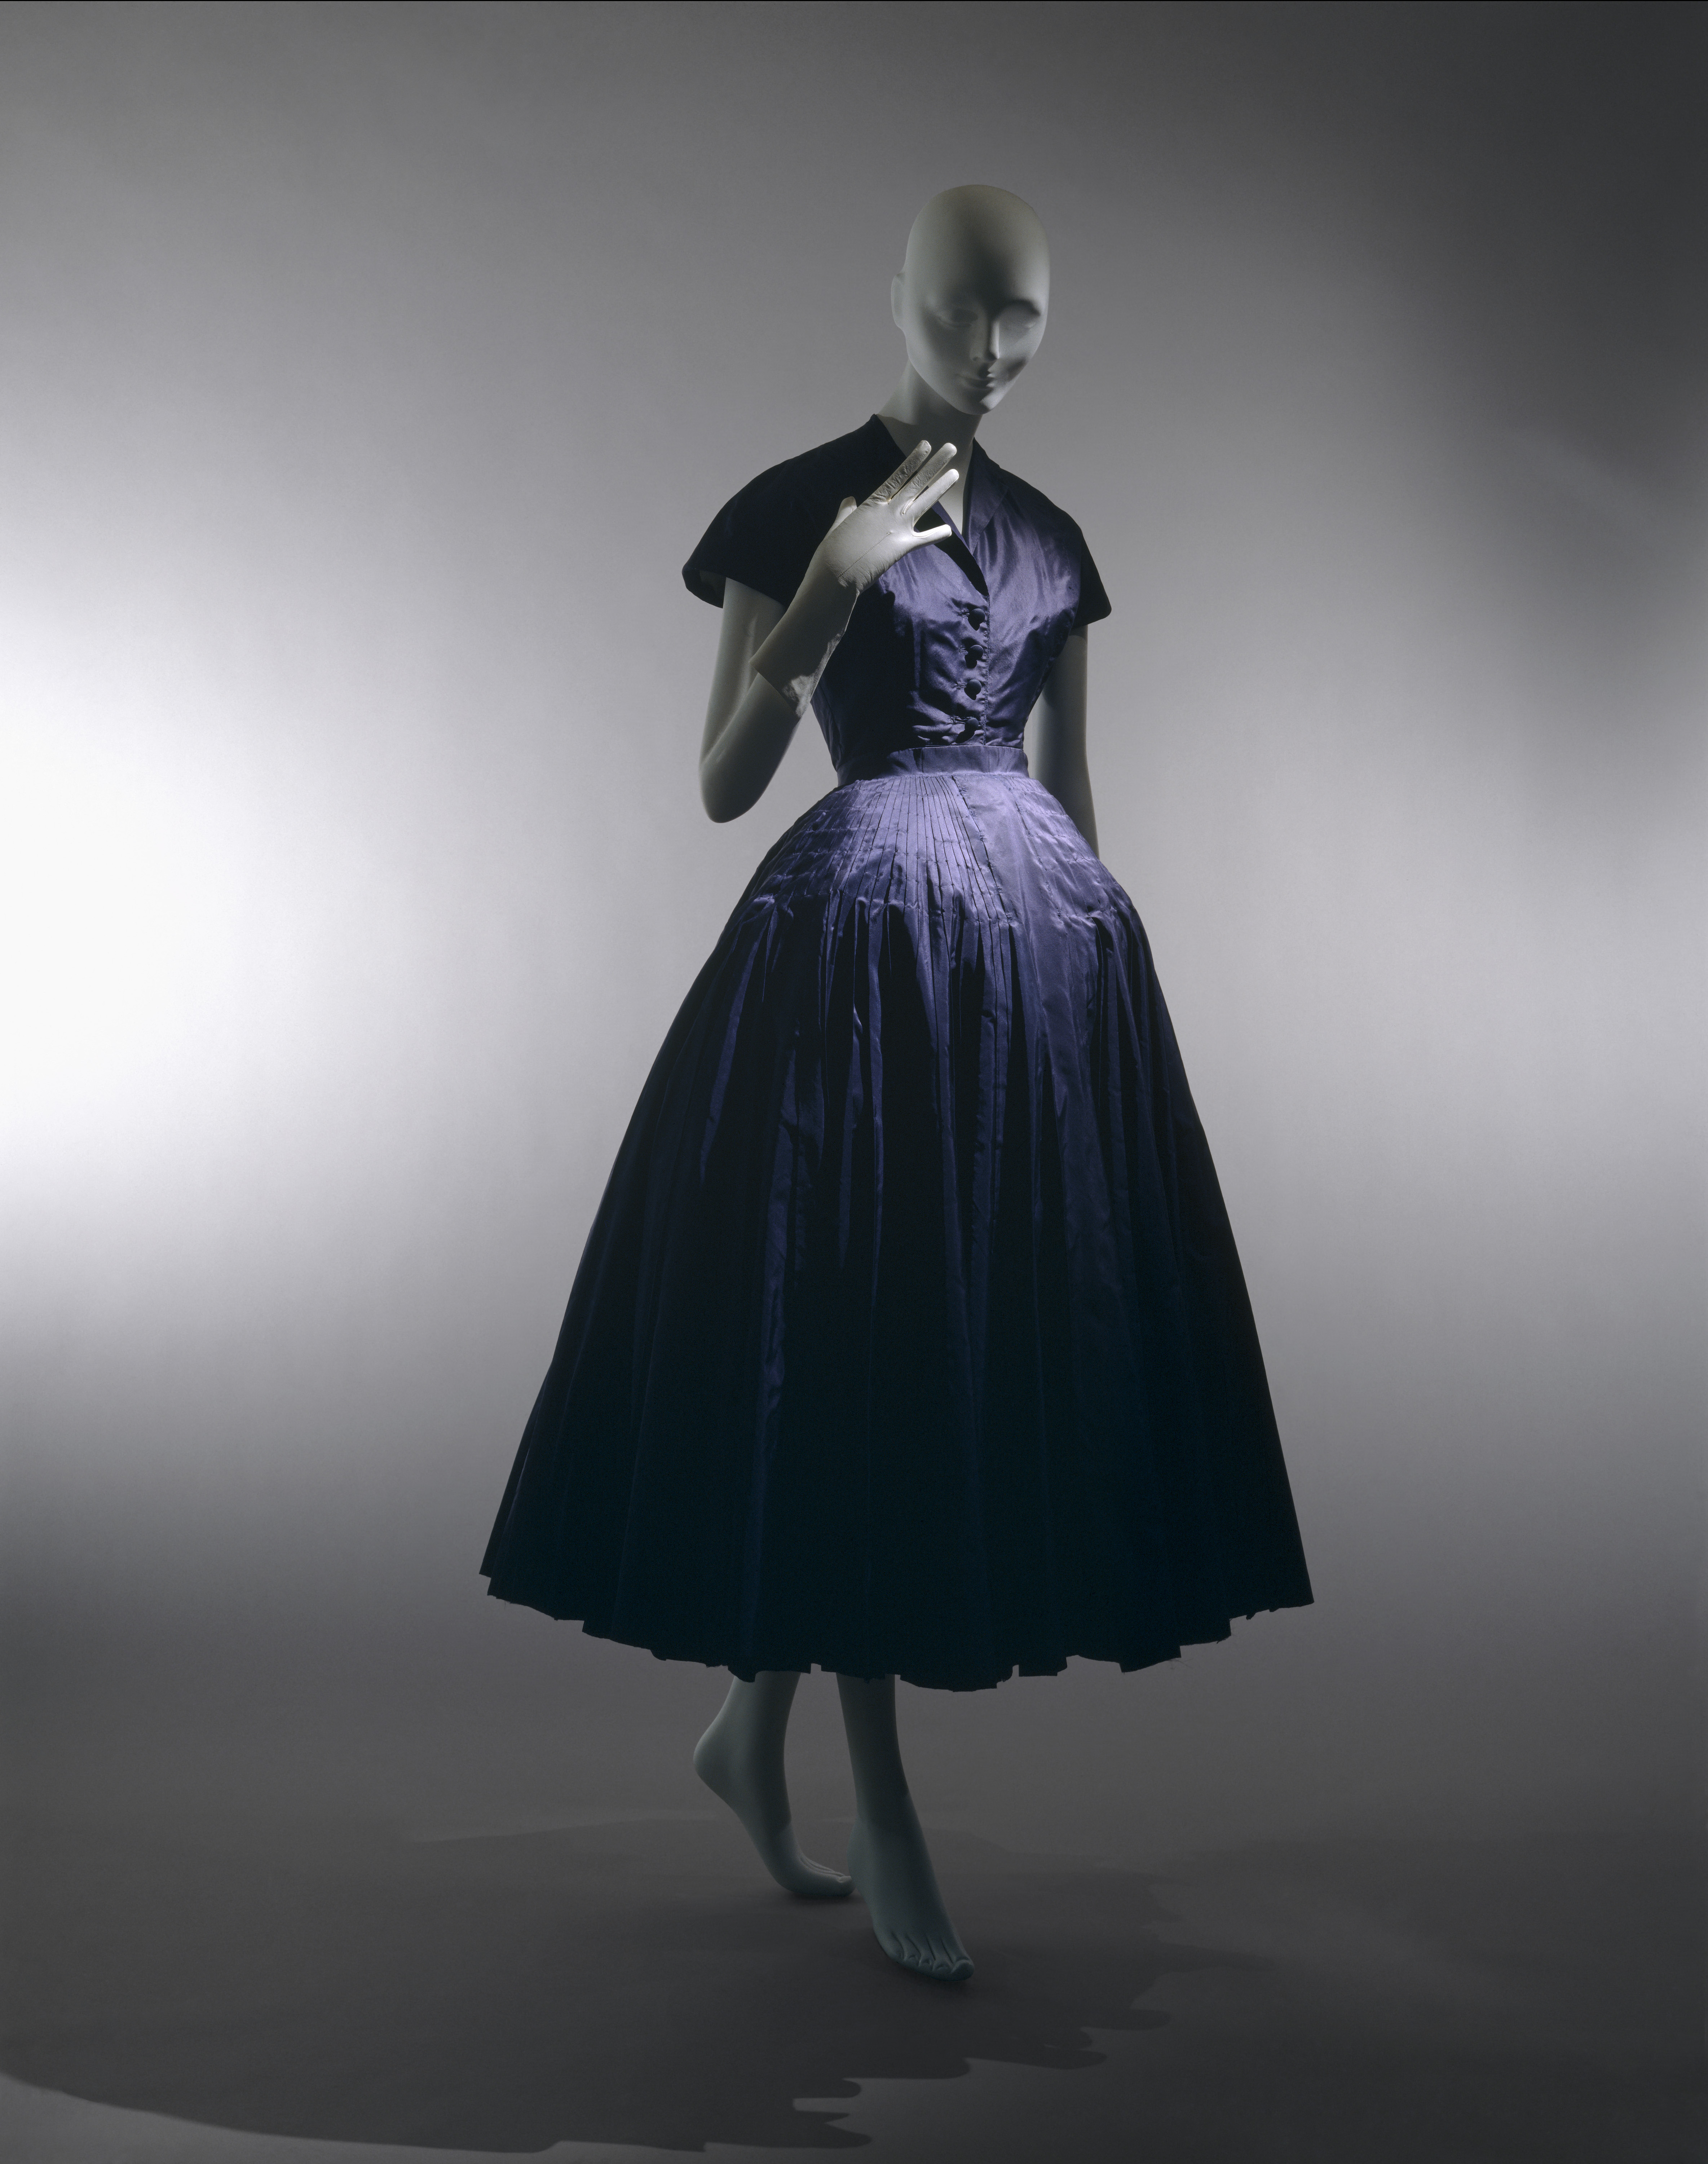 Christian Dior And The Aesthetics Of Femininity Athenaeum Review